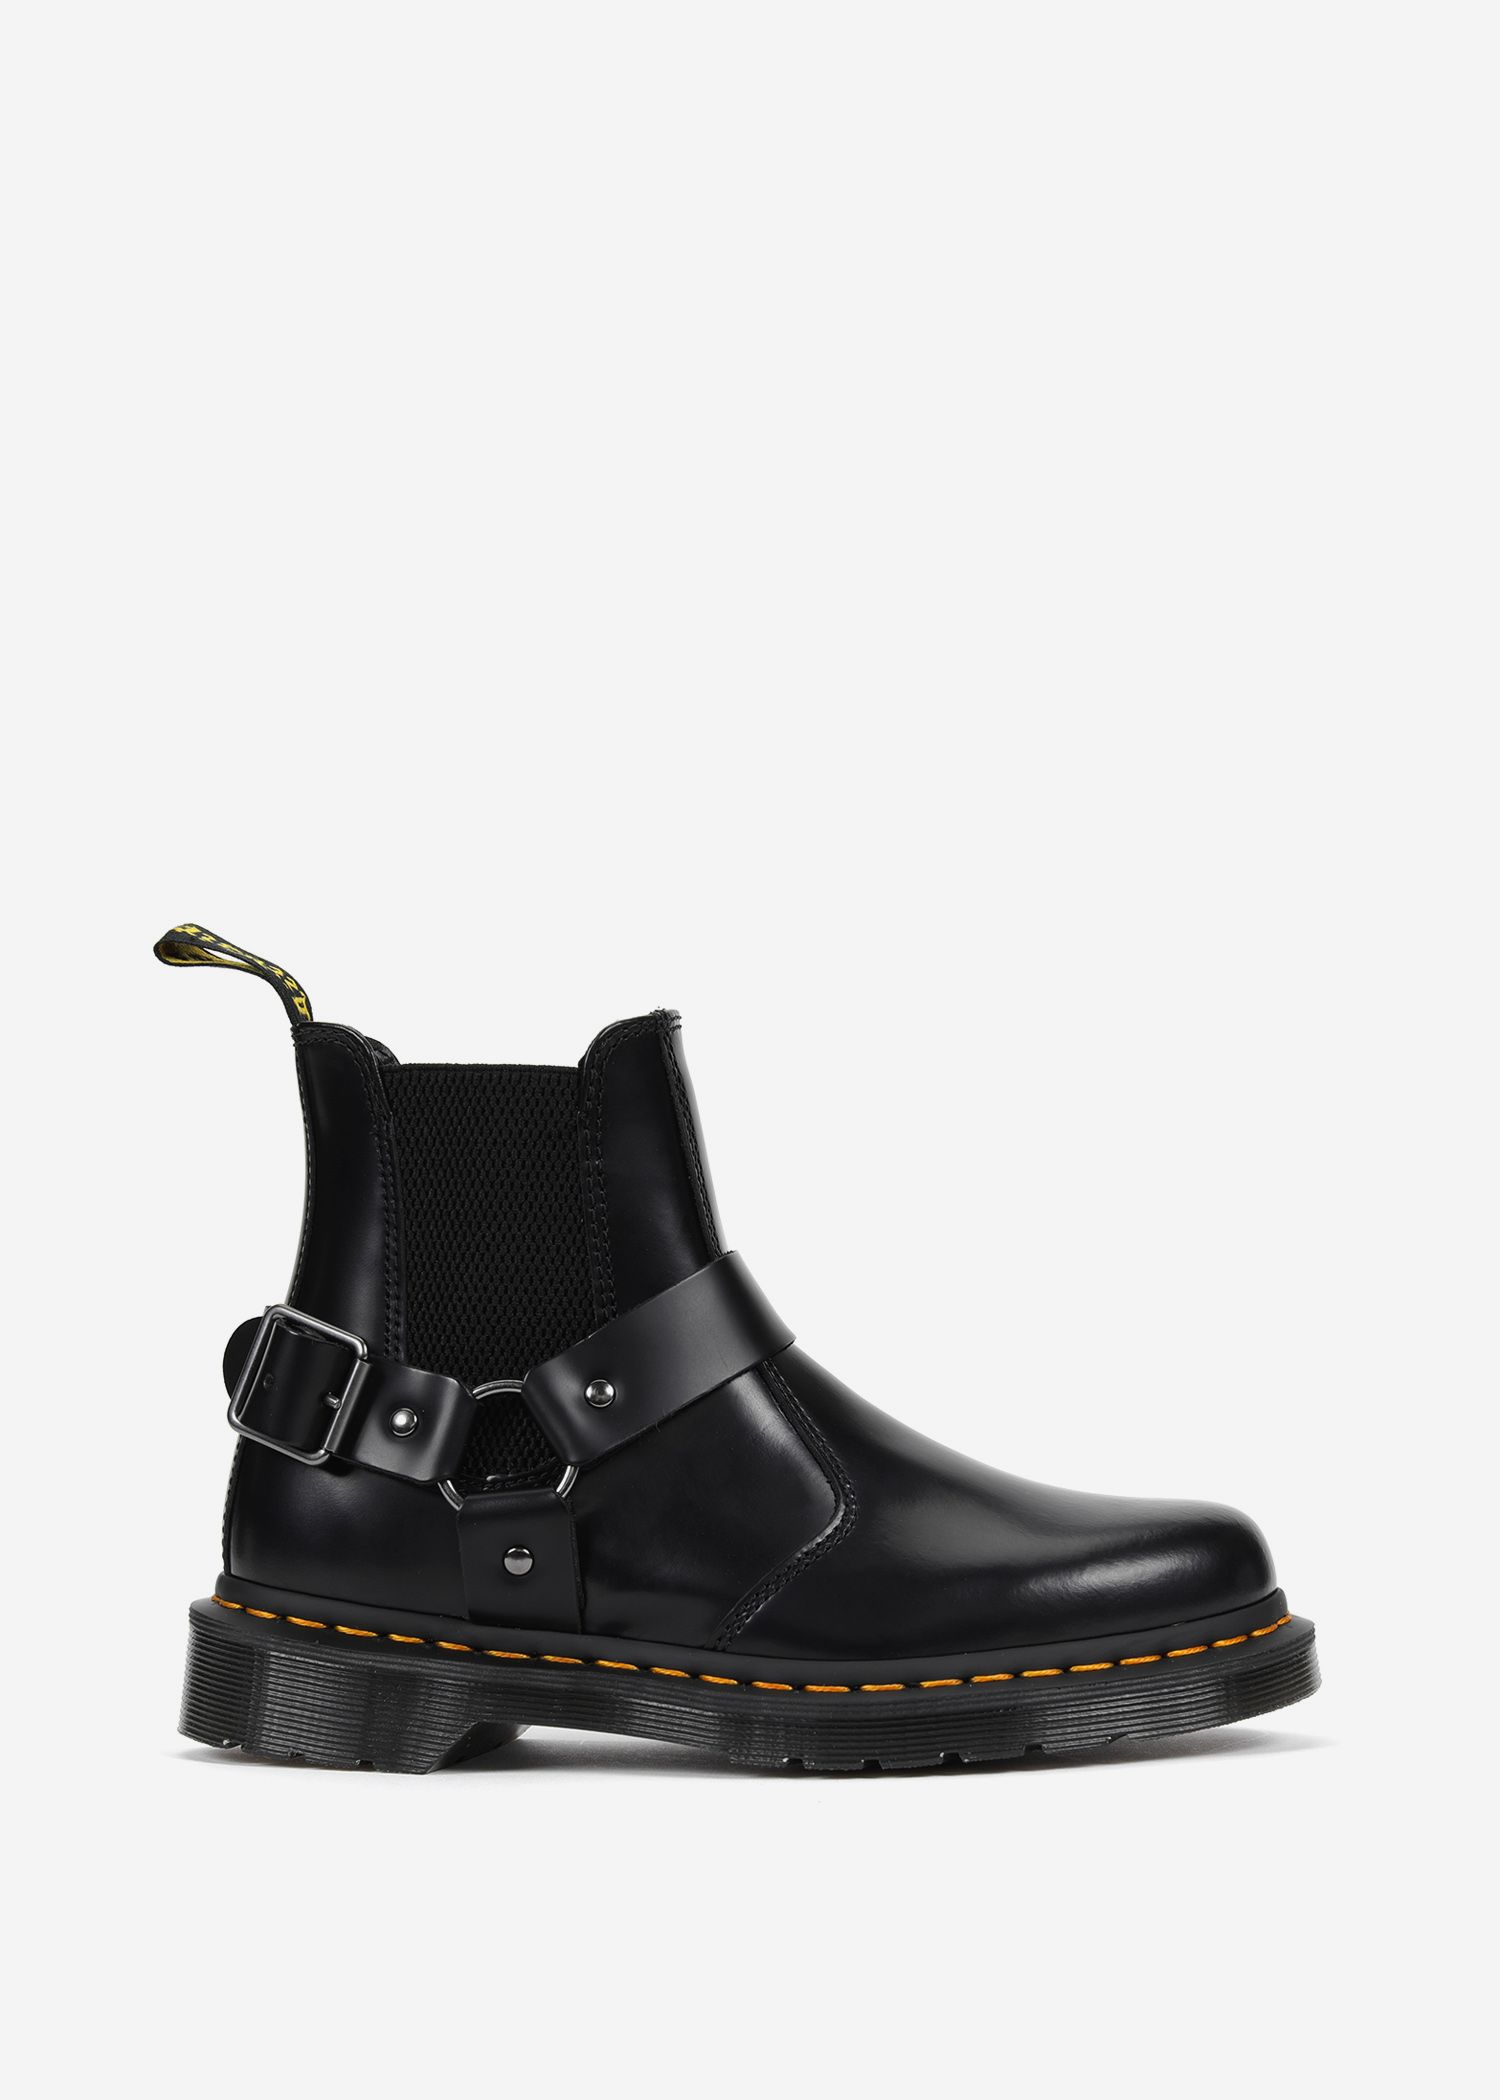 784555276932 Dr. Martens Wincox Polished In Black